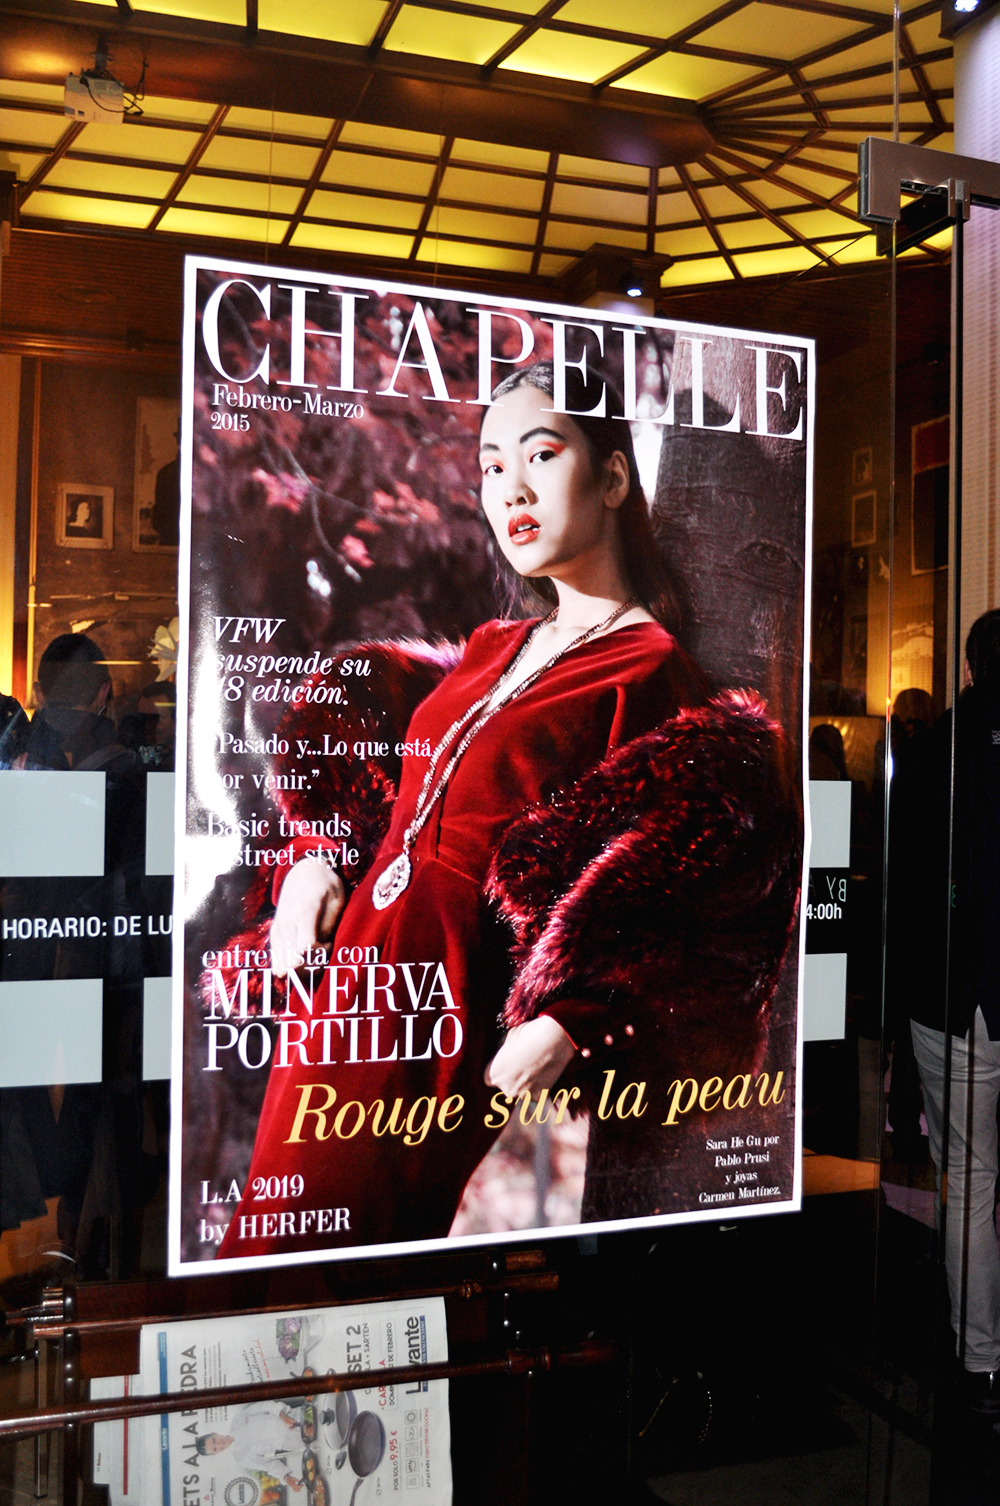 chapelle magazine valencia fashion diseñadores moda emergentes, something fashion blog, amanda r., astoria palace hotel launch party, evento valencia, e. jairycovich, revista chapelle